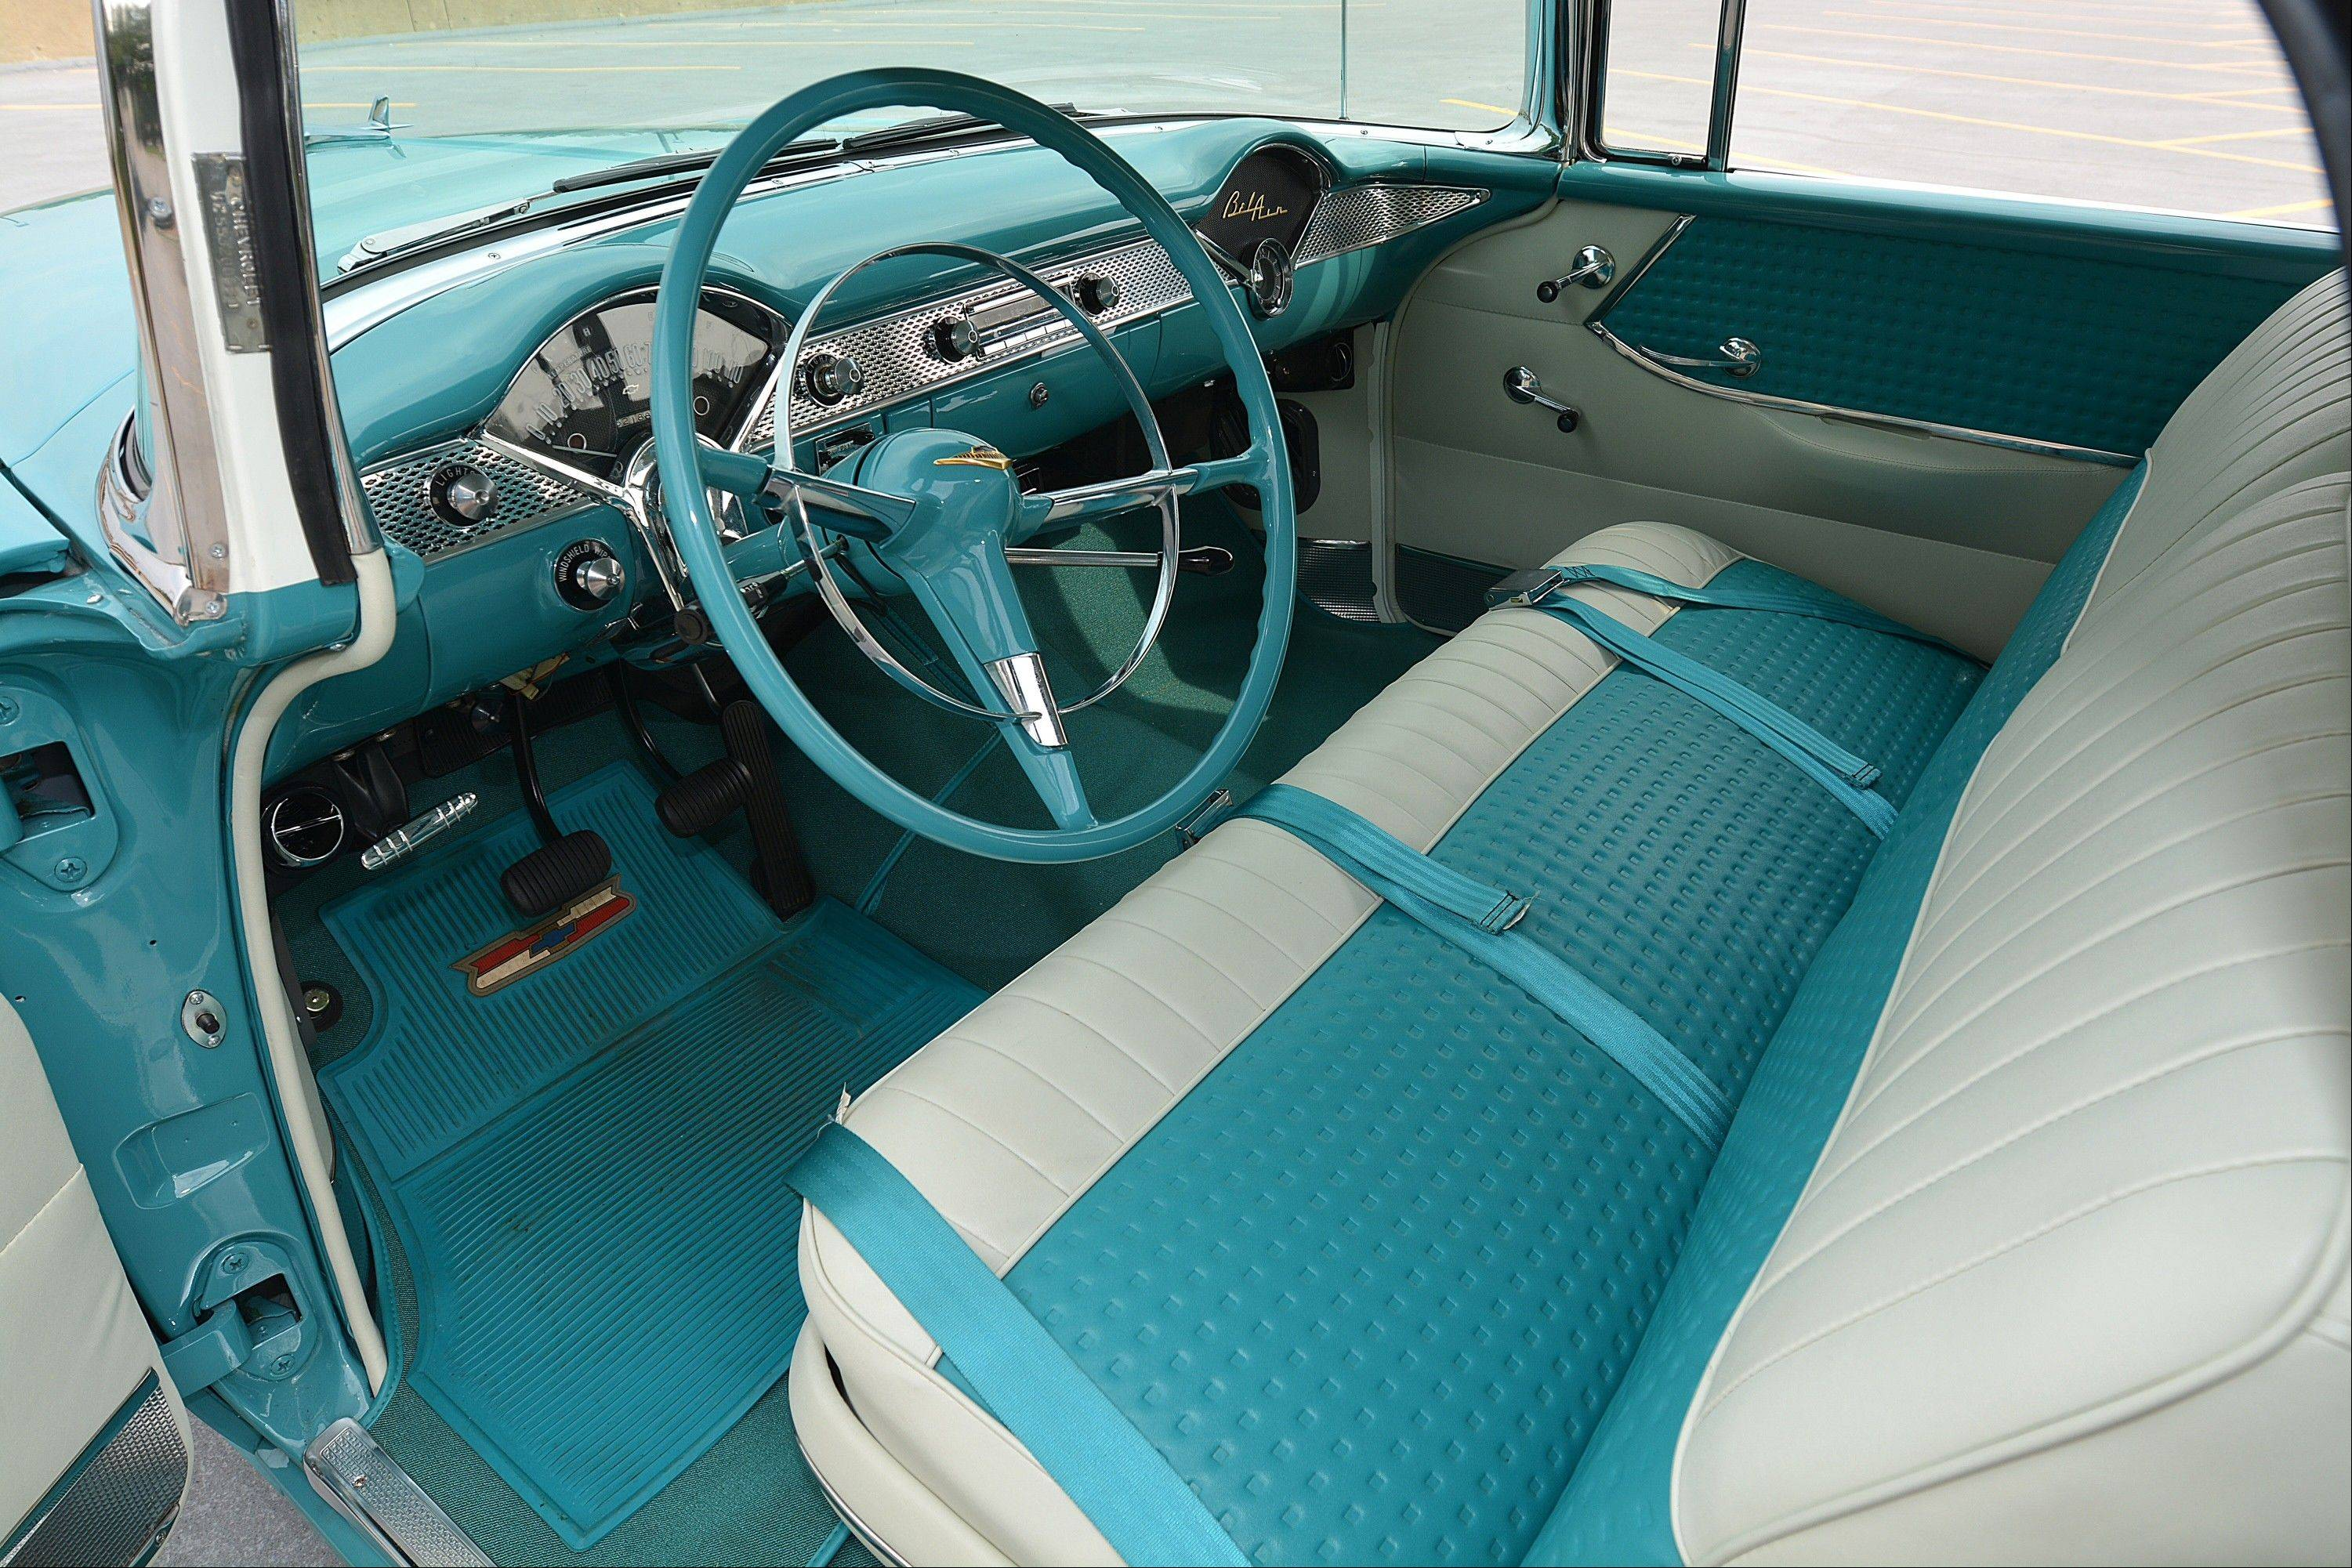 The original bench seat was tossed in favor of sportier GTO seats.